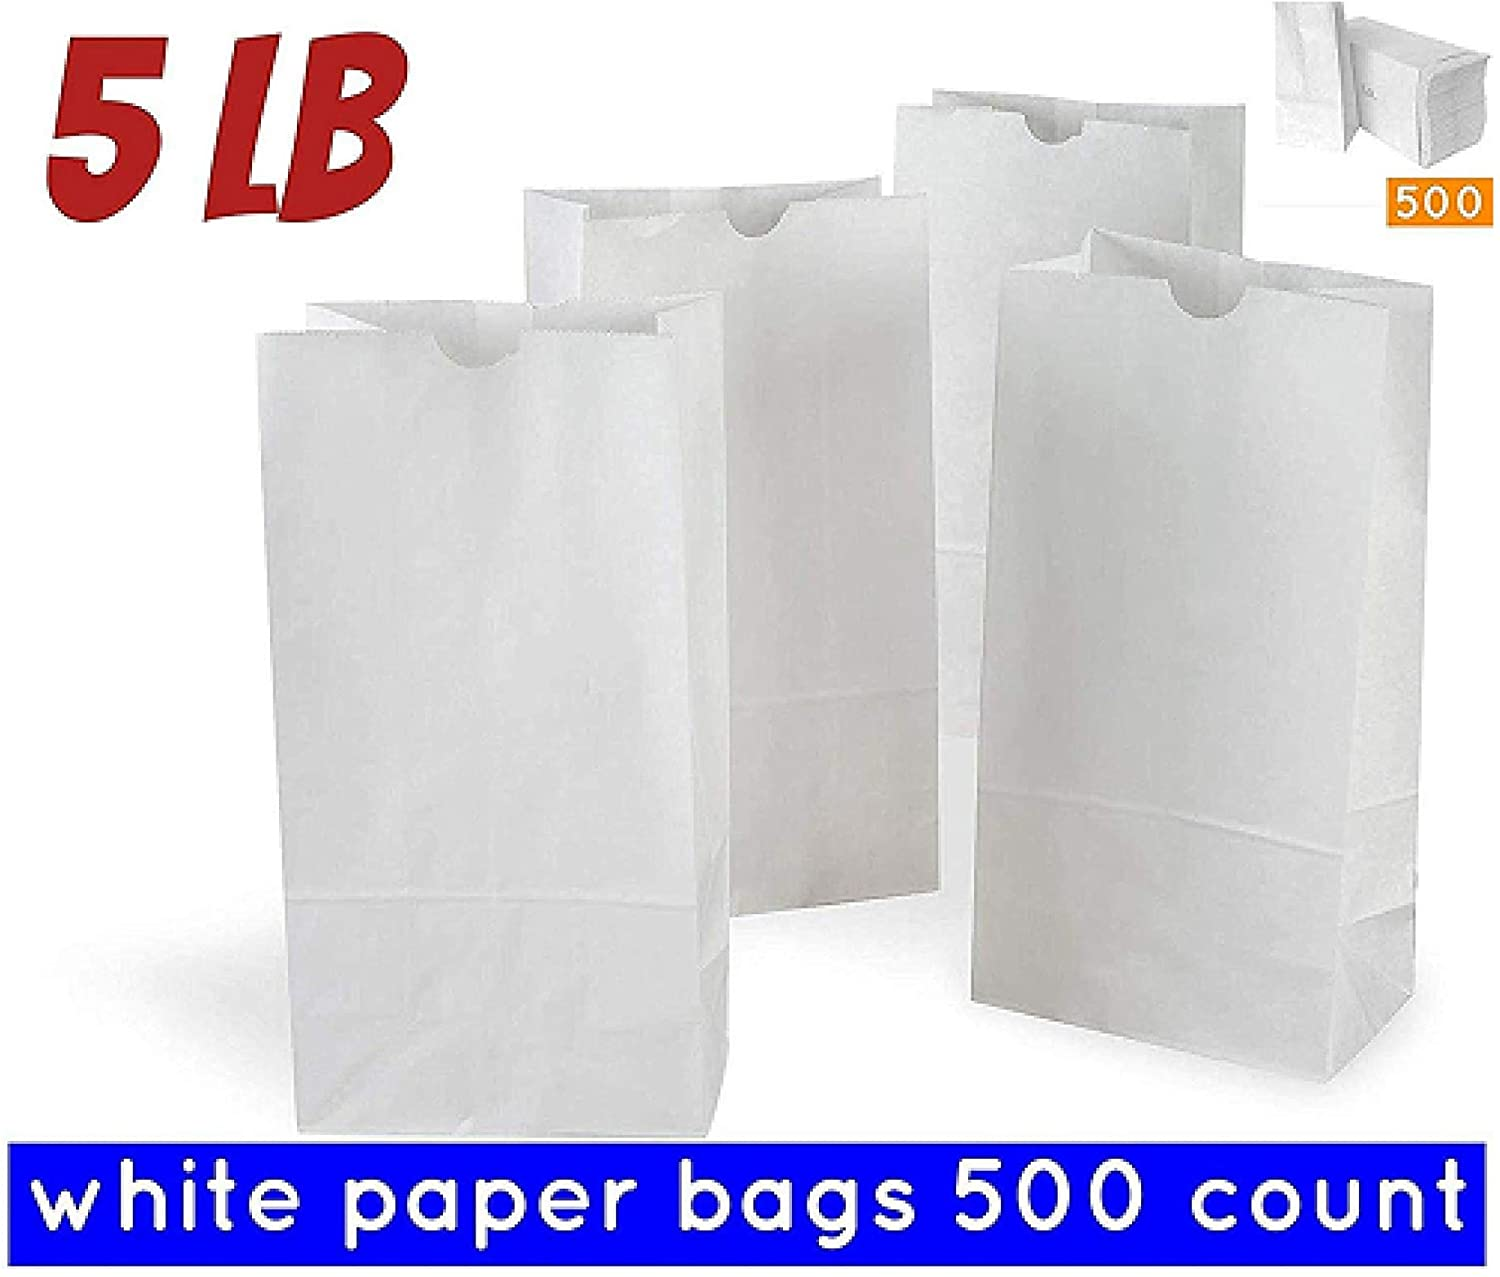 5 Pound White Paper Bag Pack of 500 White Kraft Paper Bags Great for Crafts, Lunch Bags, Party Bags, Envelopes White Lunch Bags white sandwich bags paper Variety of Sizes Available